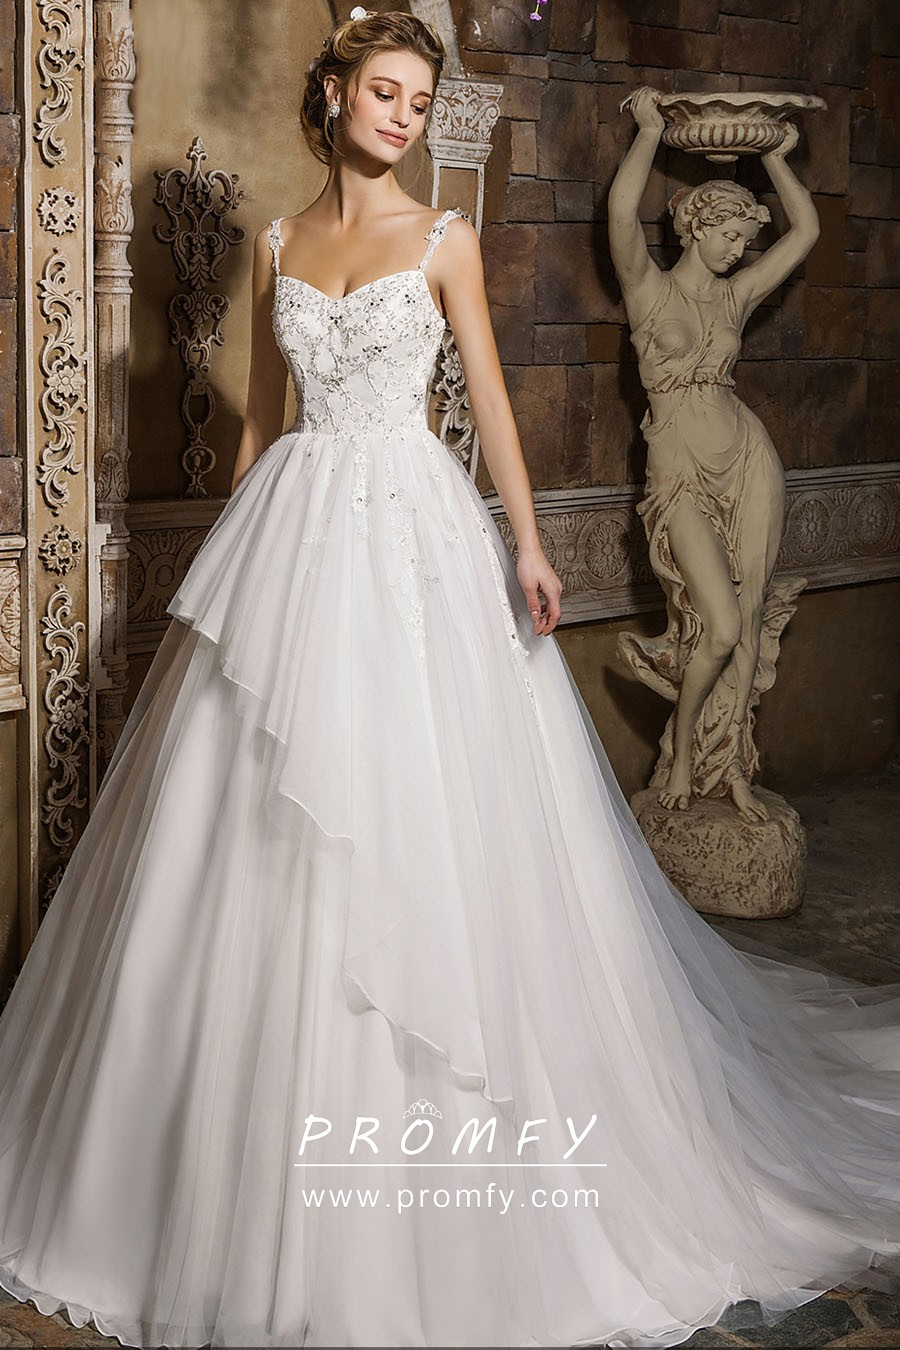 Beaded Lace Satin Organza Ball Gown Wedding Dress Promfy